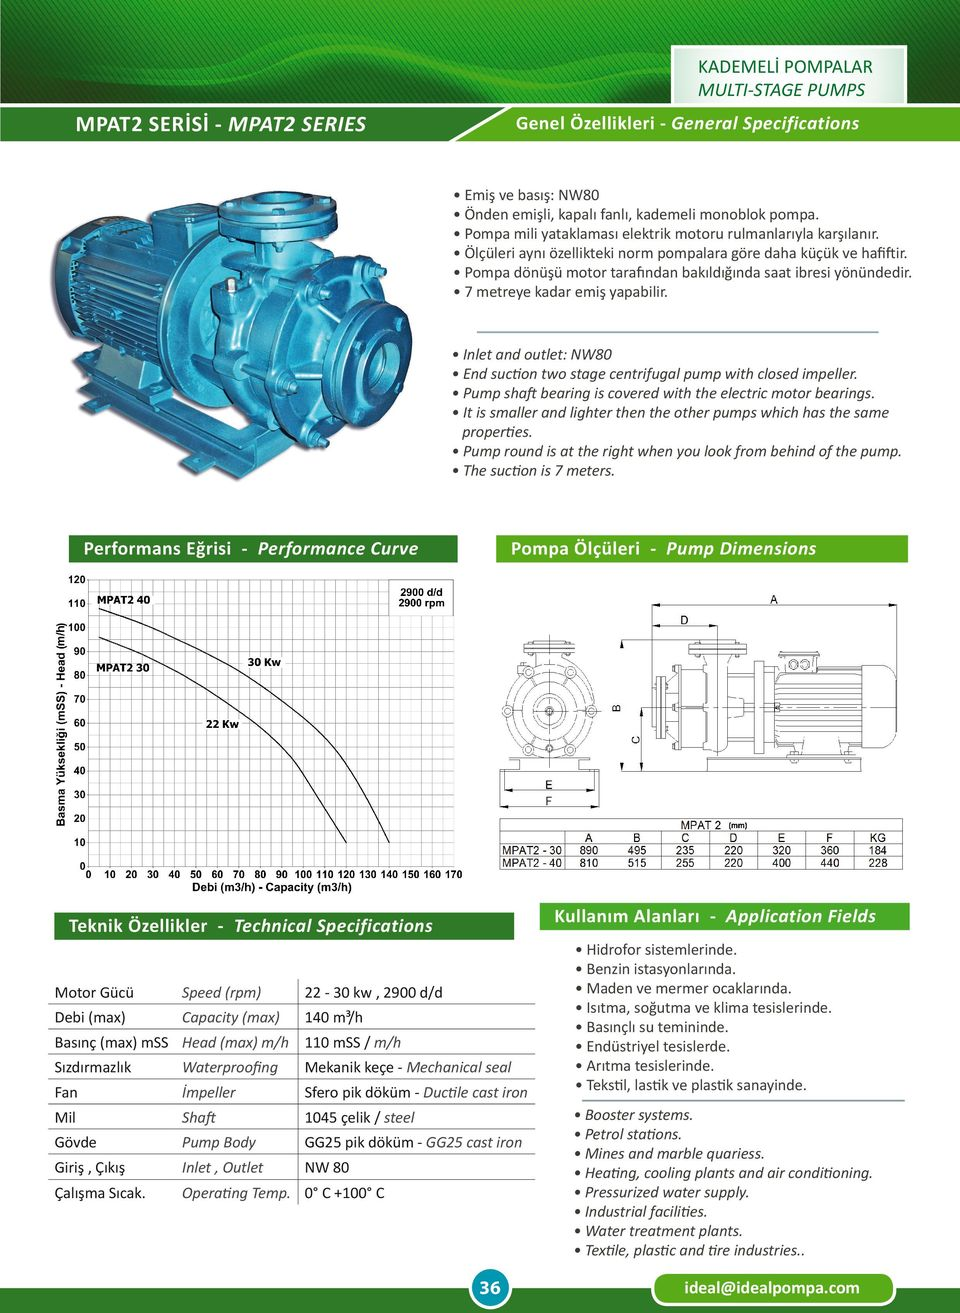 Inlet and outlet: NW80 End suction two stage centrifugal pump with closed impeller. Pump shaft bearing is covered with the electric motor bearings.